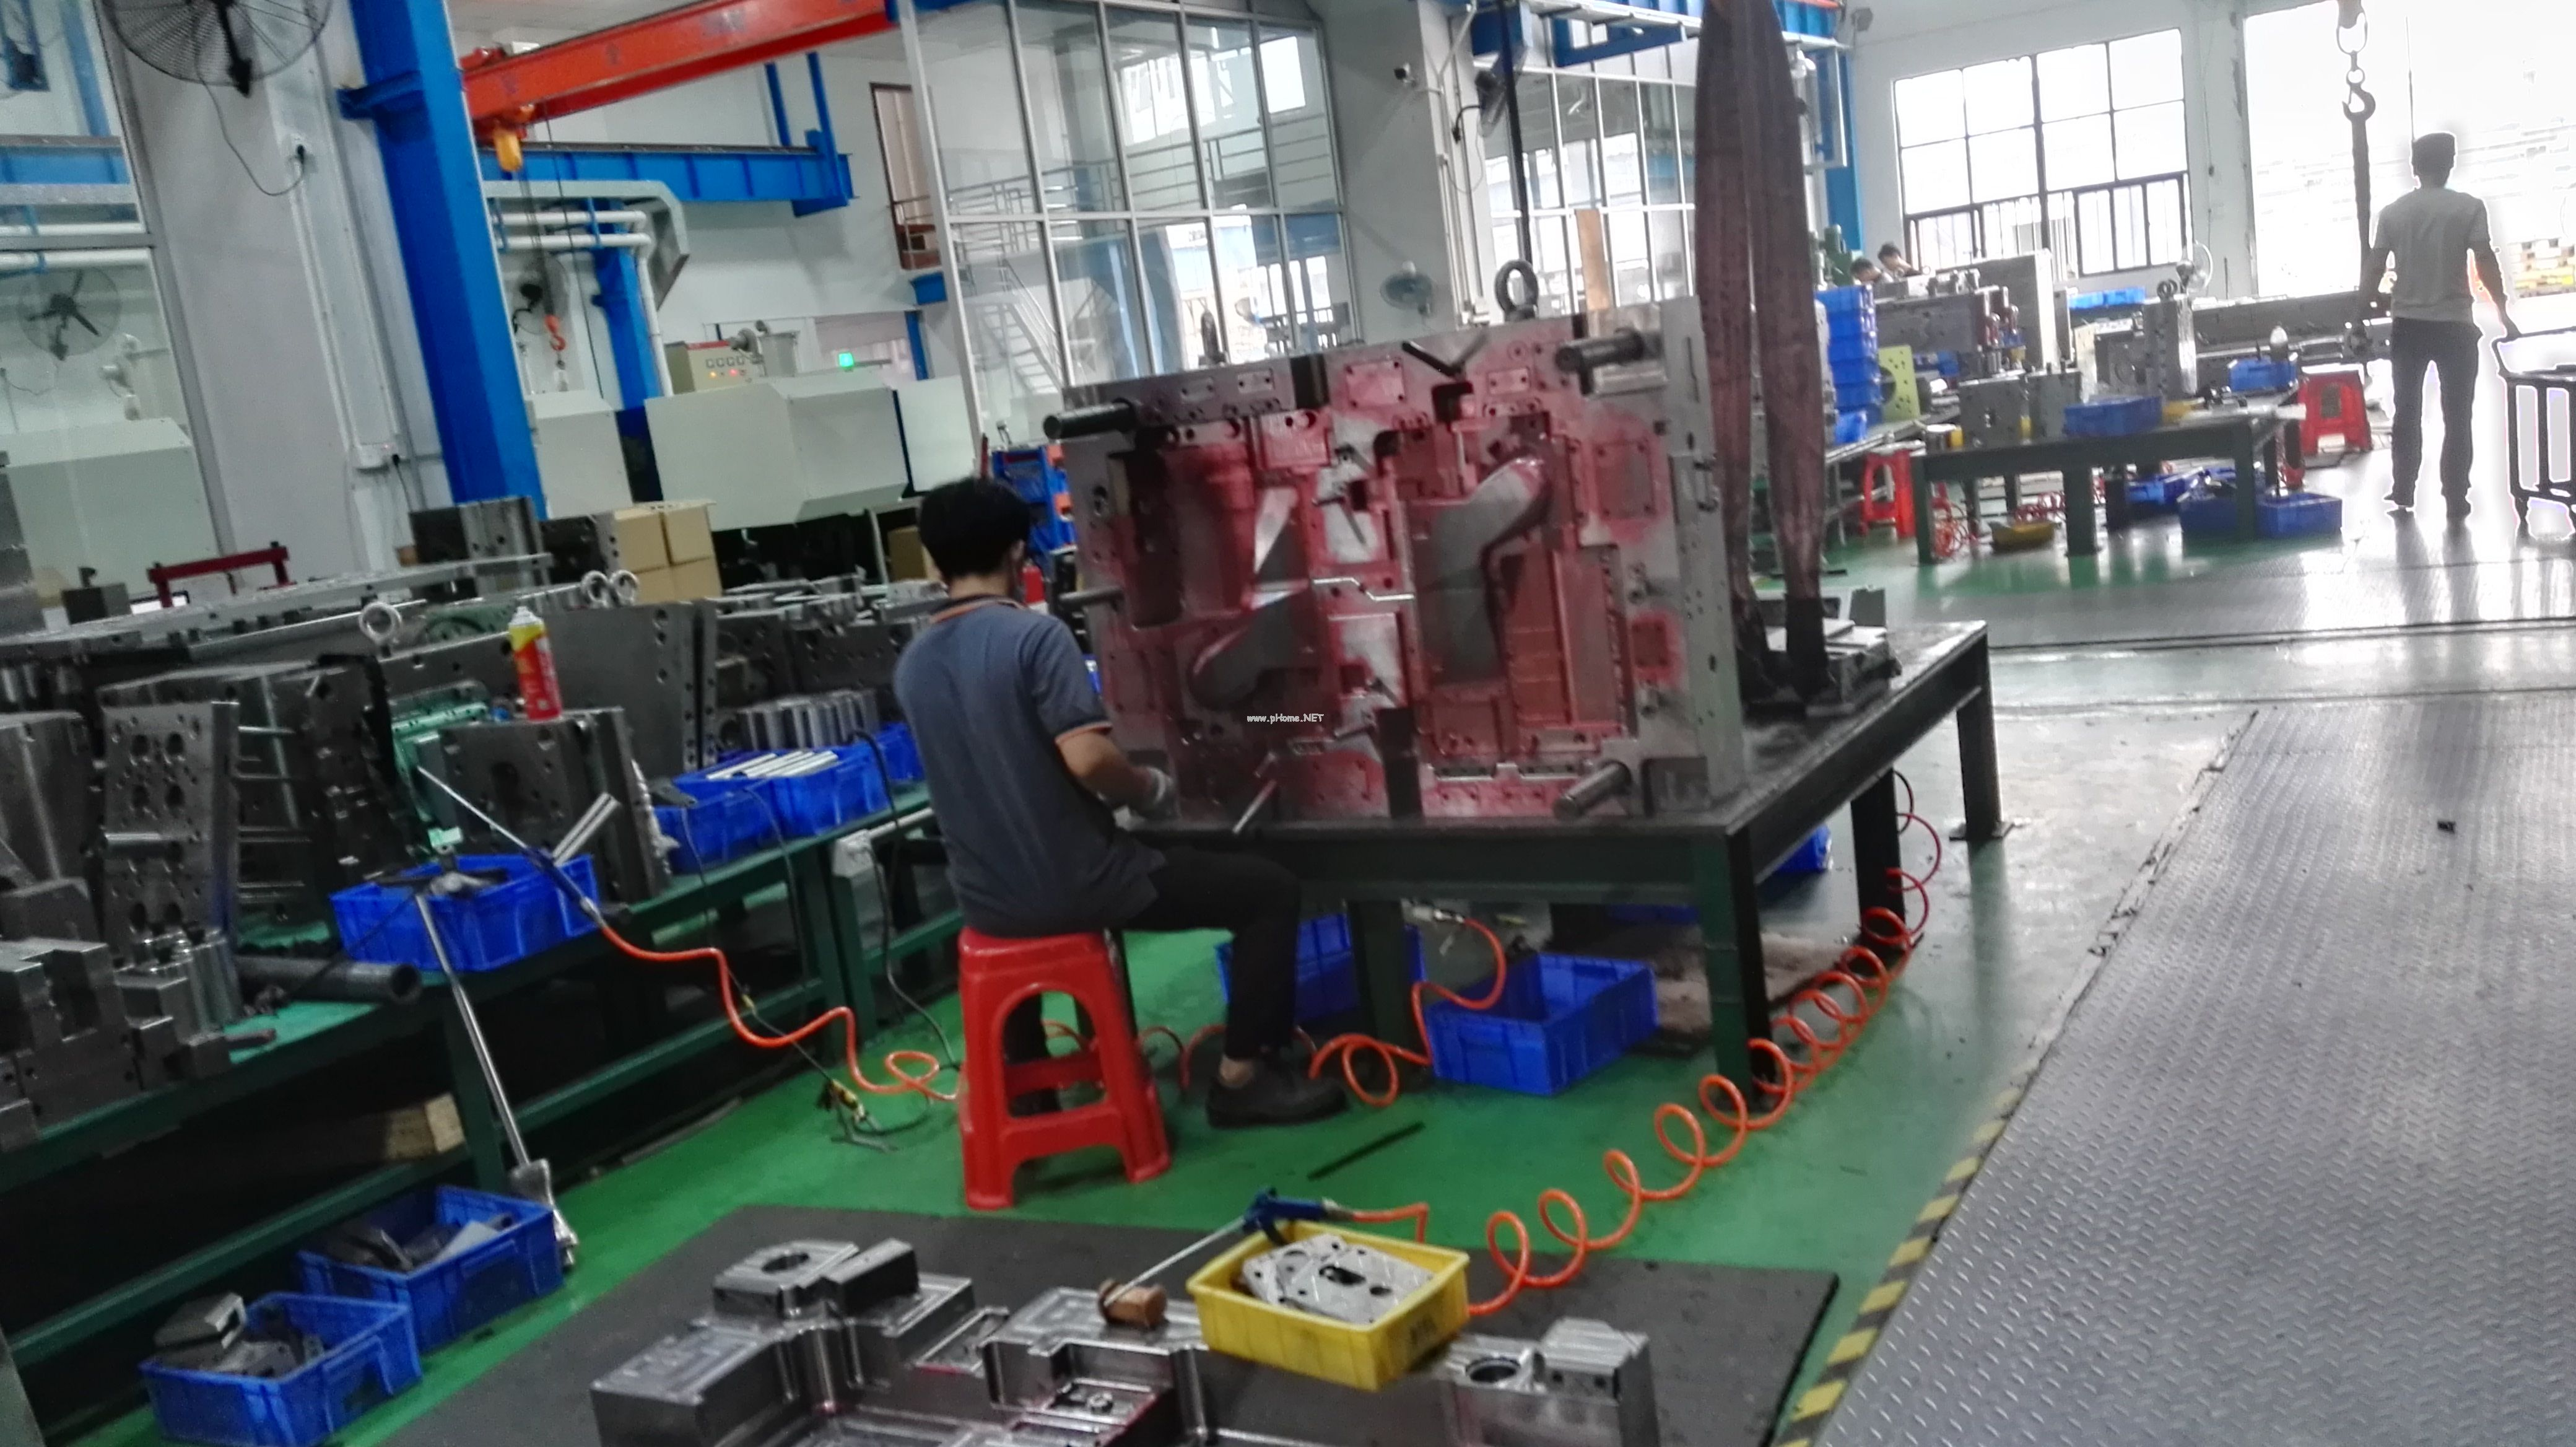 Several considerations for processing plastic molding